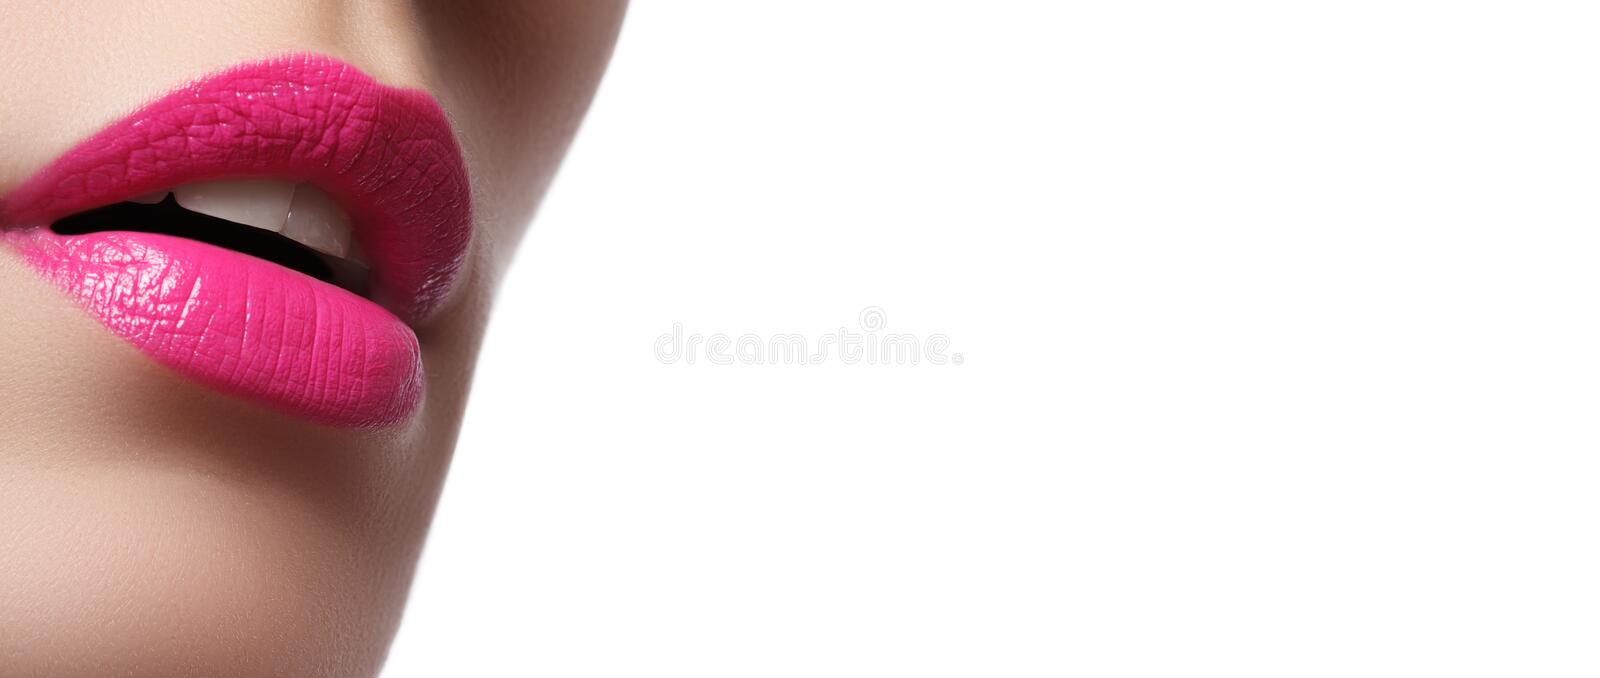 Close-up of woman`s lips with bright fashion pink glossy makeup royalty free stock photos